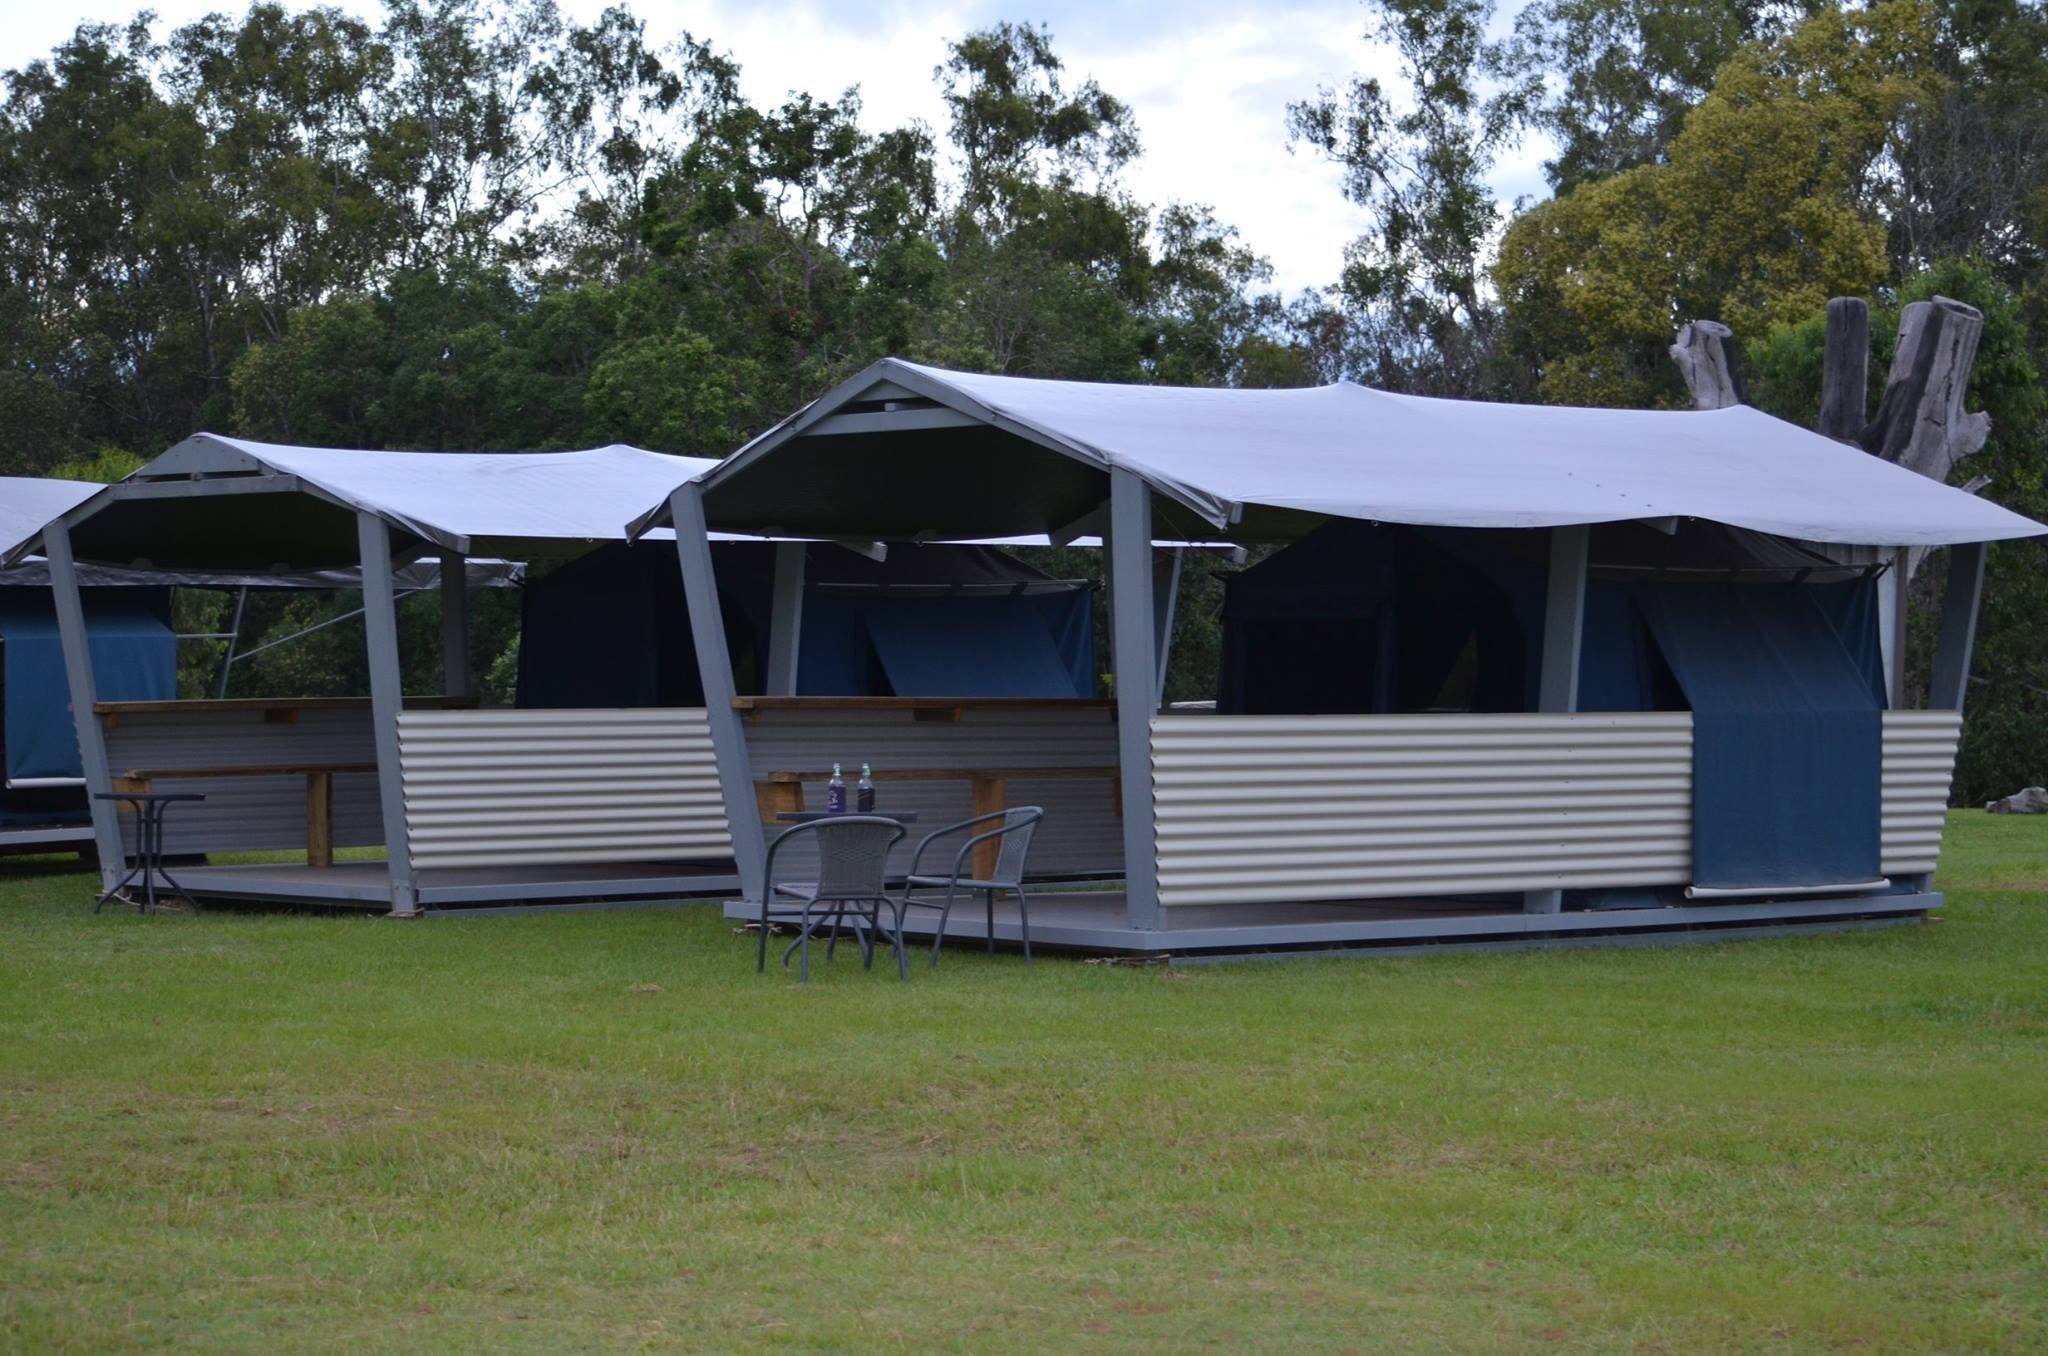 These two tents left for Saturday night ideal for 2 couples. Complete with quality beds u0026 linen c&fire out the front bottle of your favorite. & These two tents left for Saturday night ideal for 2 couples ...